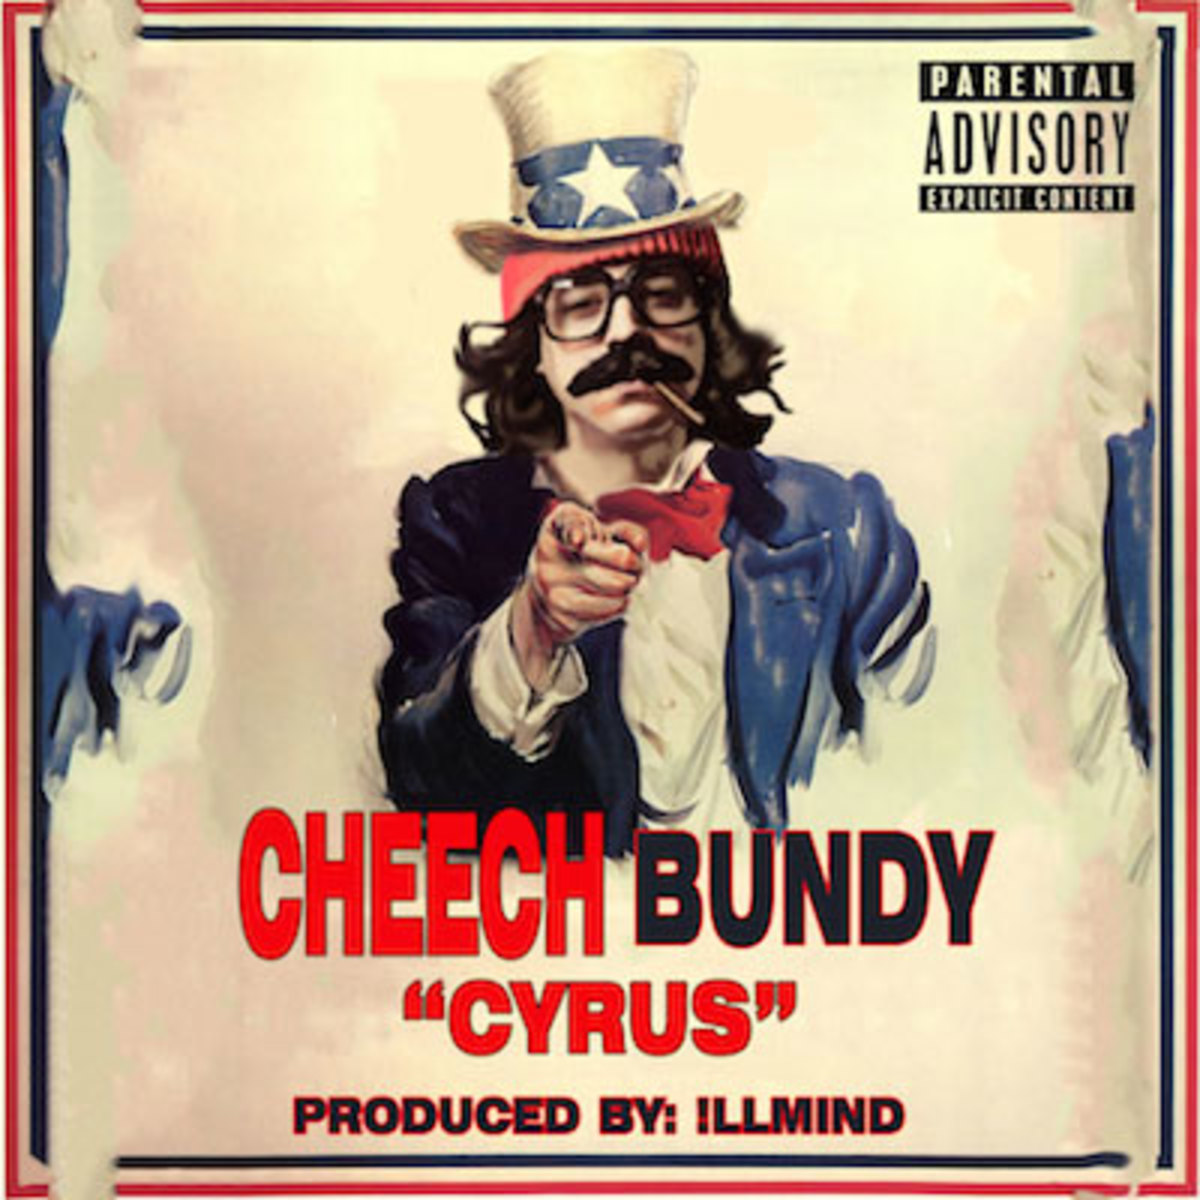 cheech-bundy-cyrus.jpg